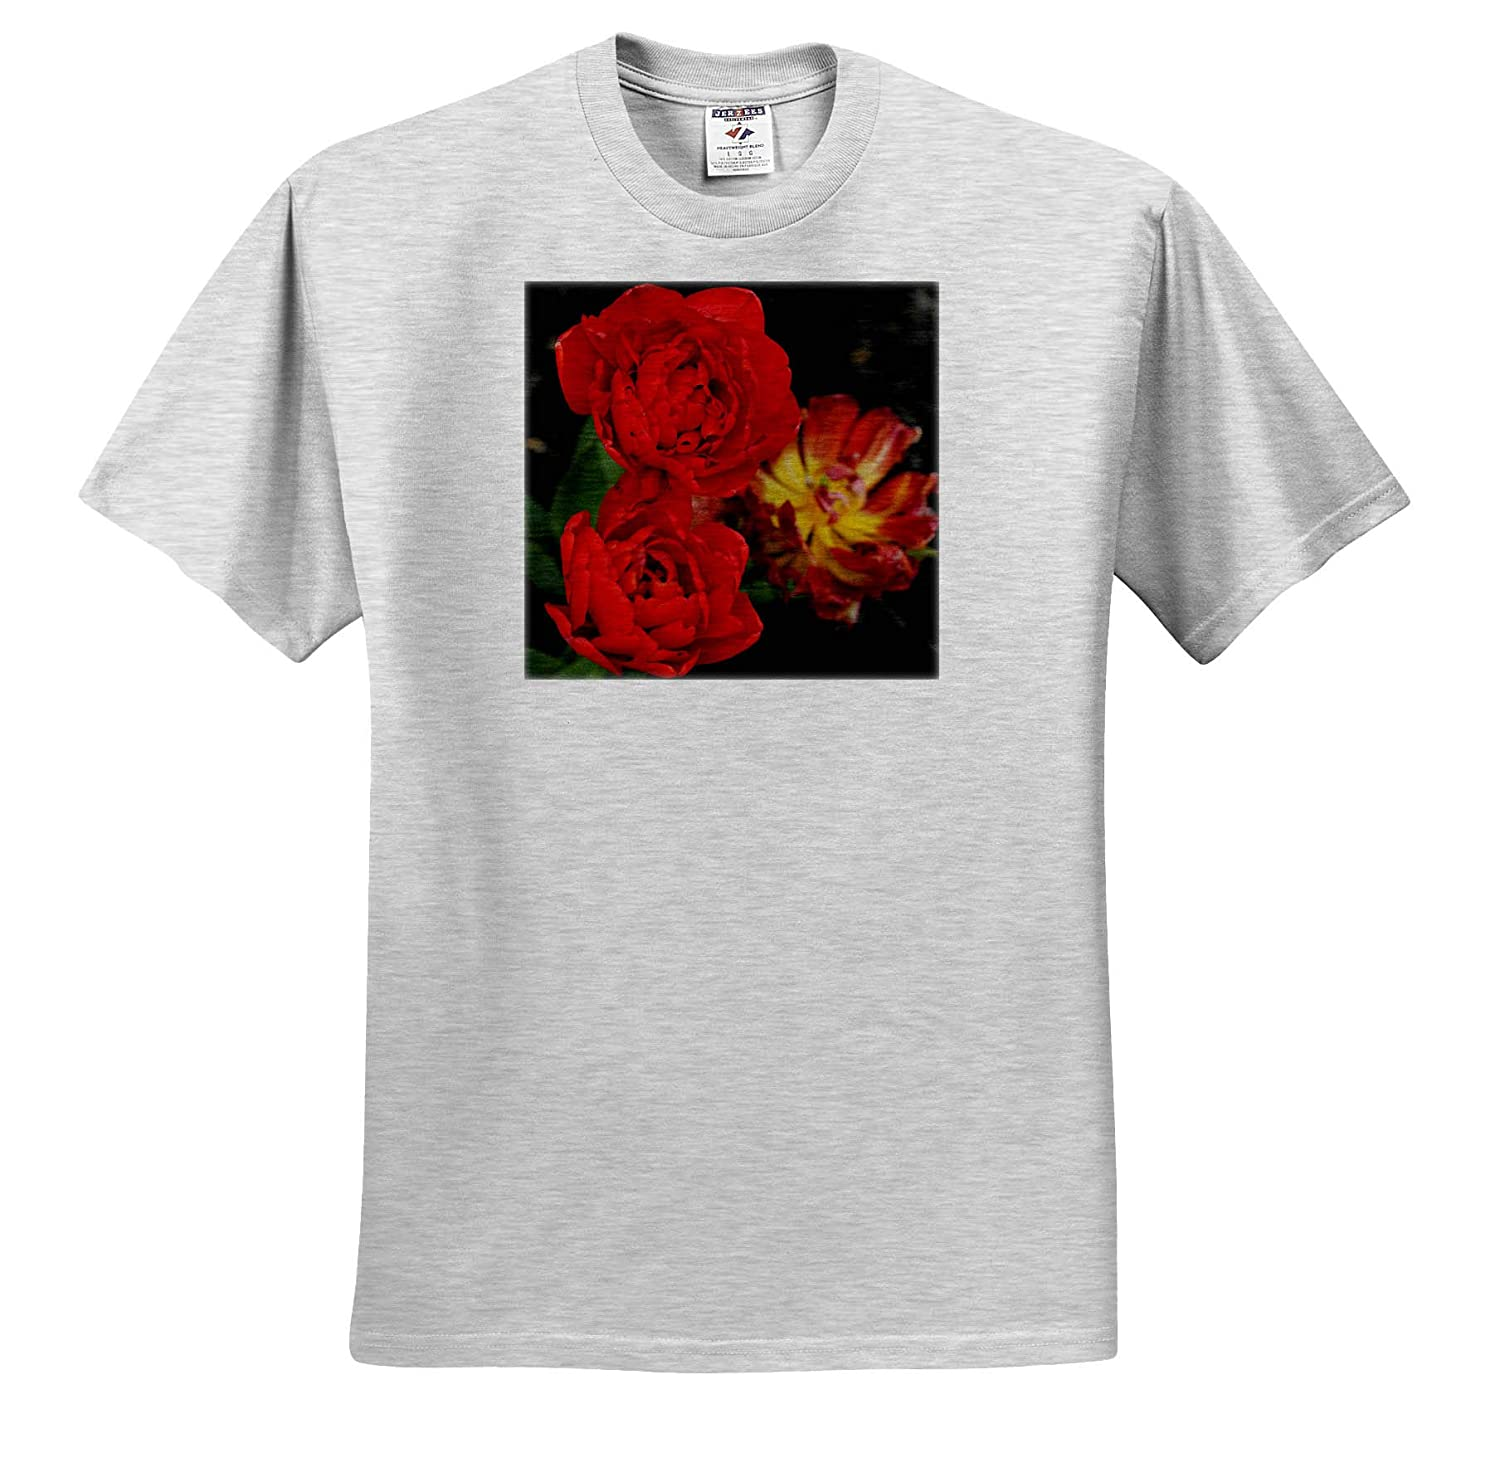 Flowers 3dRose Stamp City A Photograph of Three Stunning Double Late Mixed Tulips - Adult T-Shirt XL ts/_309907